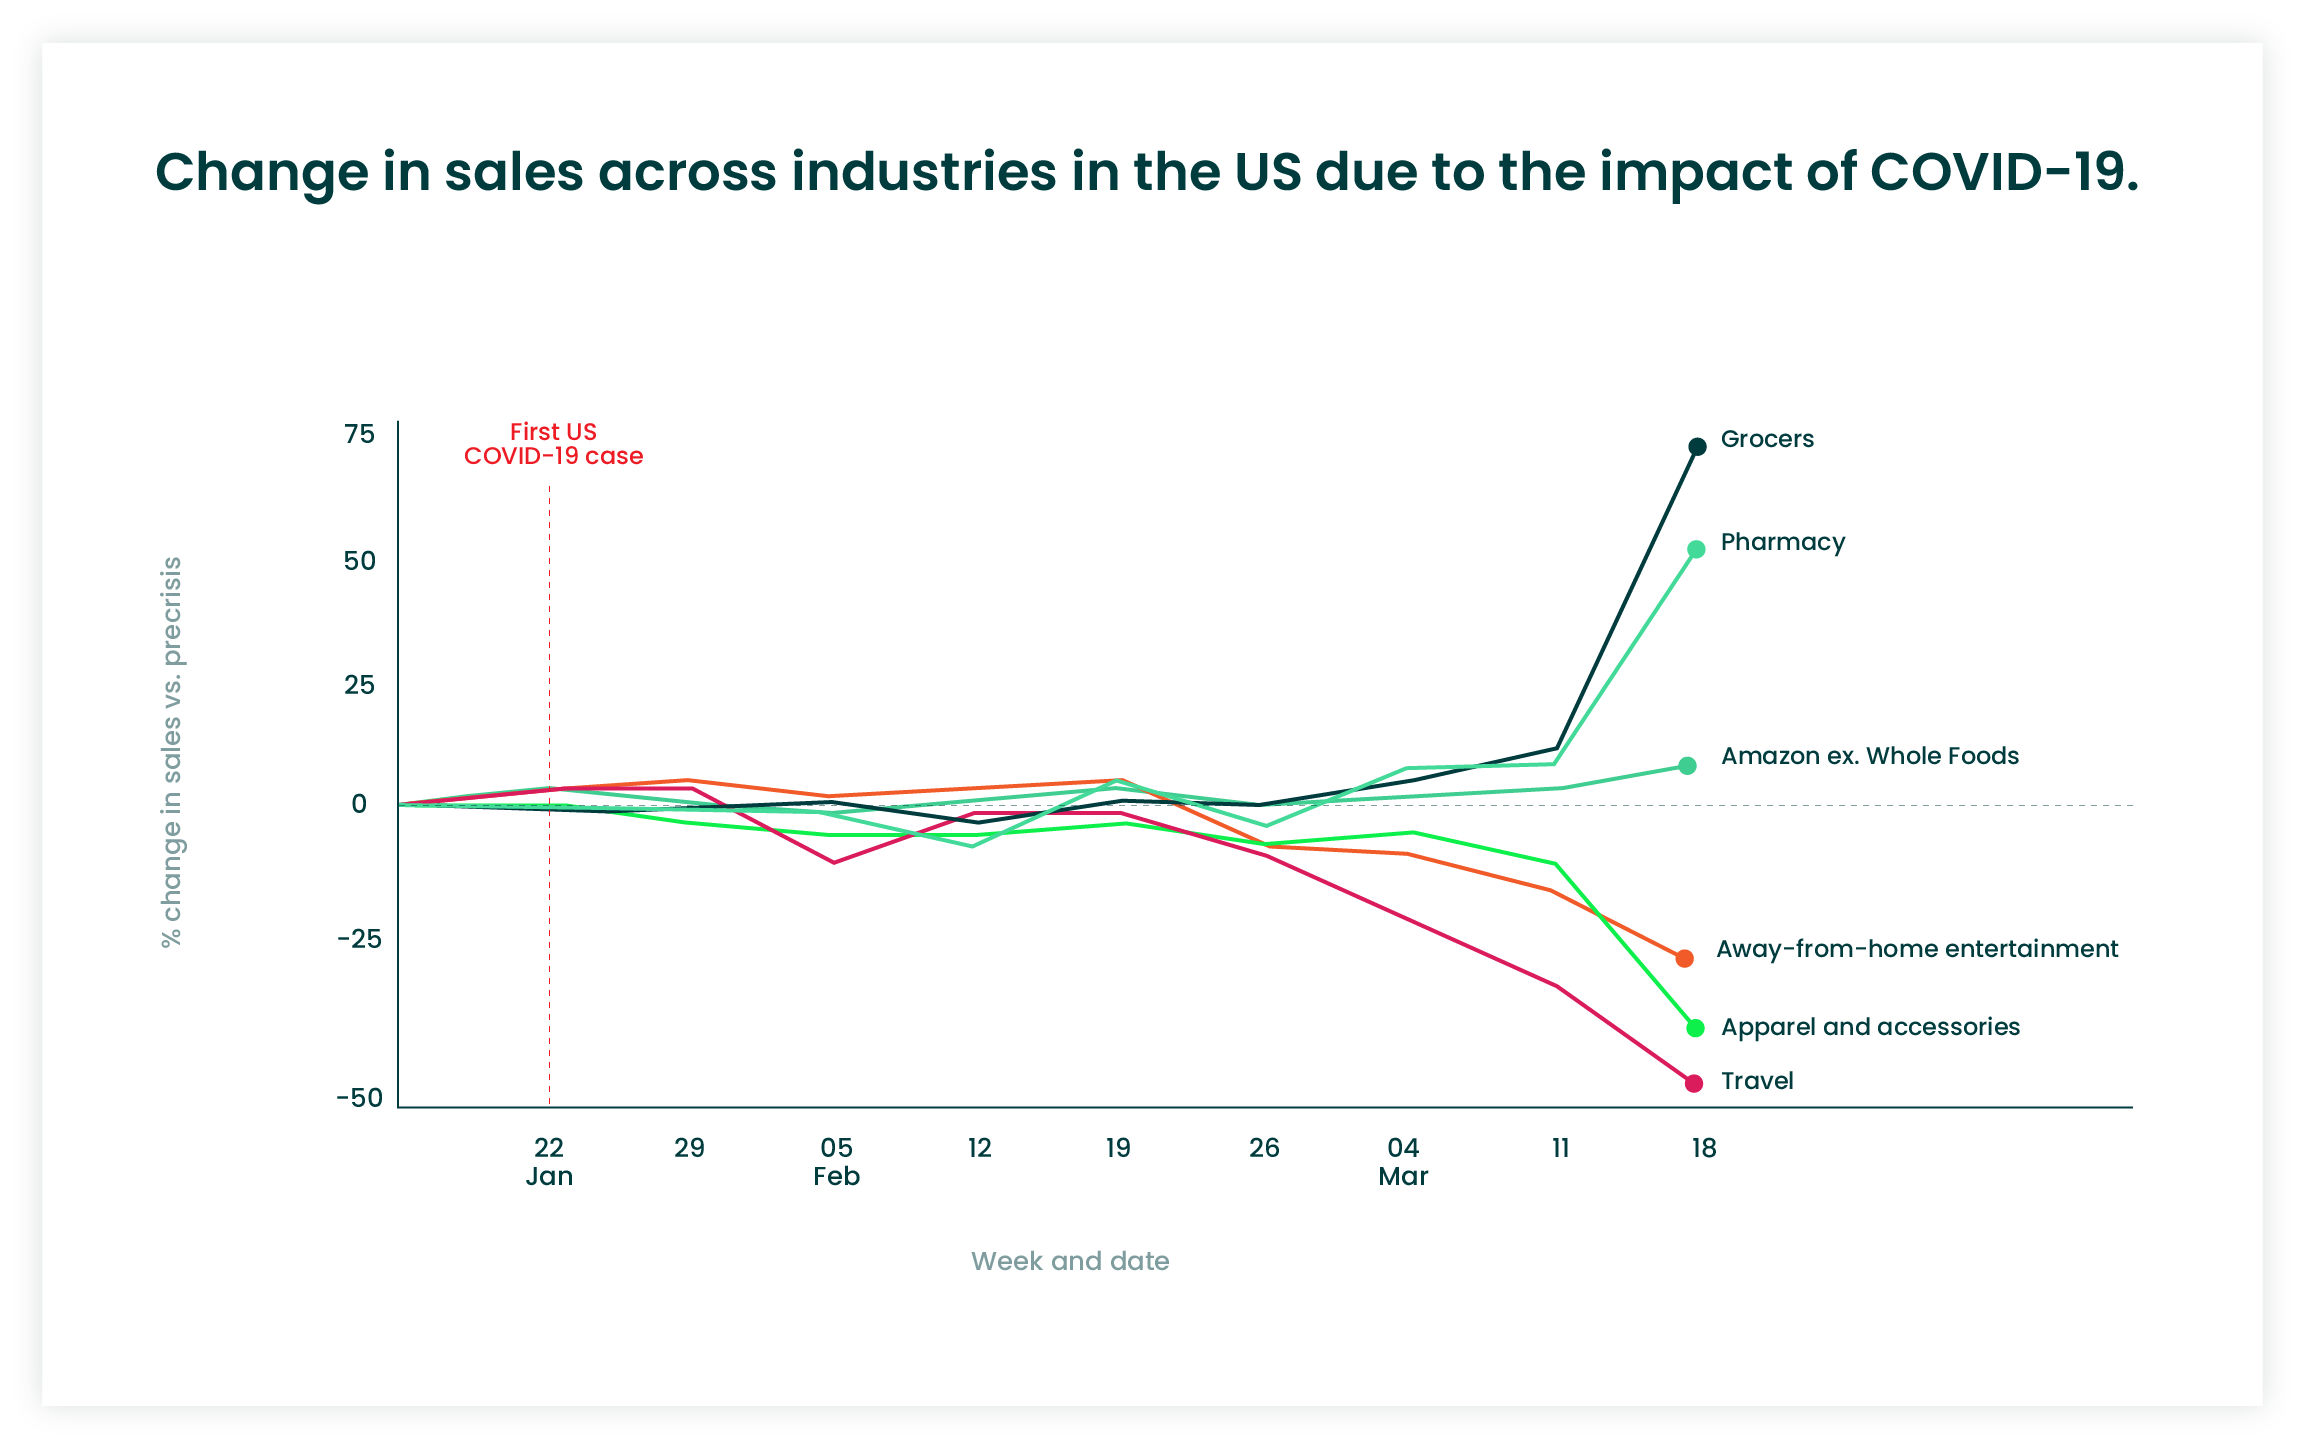 COVID-19 affects sales in US statistics